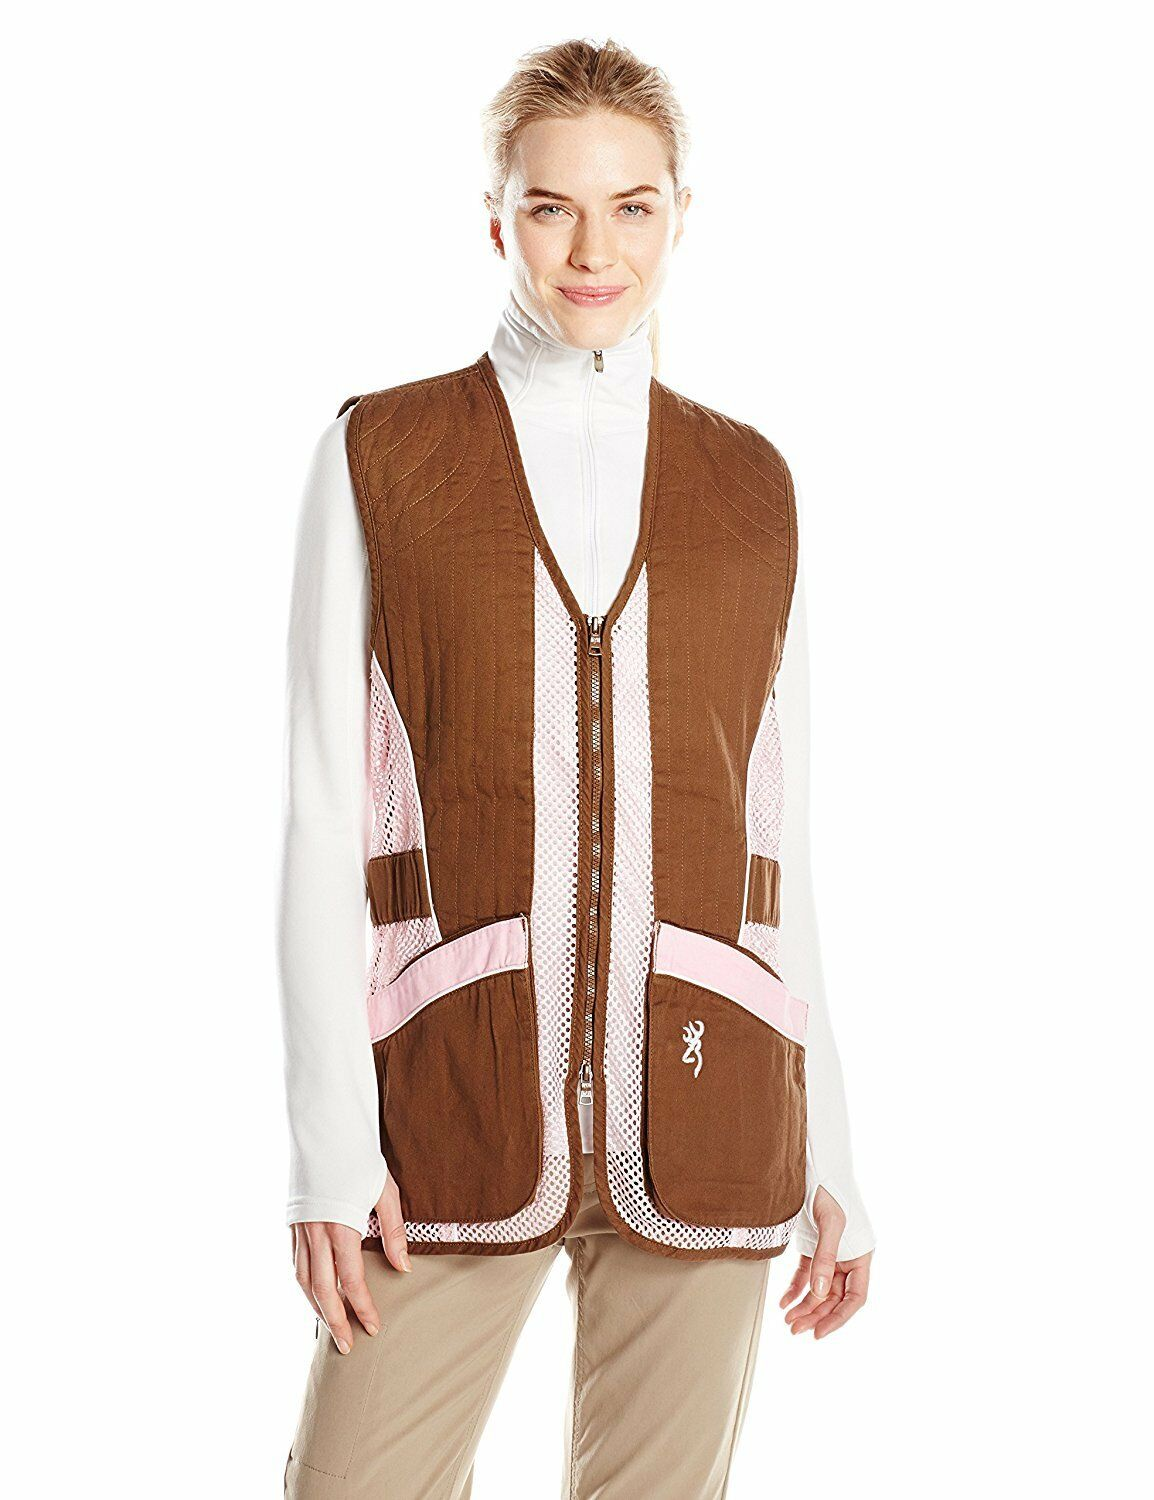 Browning Womens Sporter II Shooting Vest Brown Pink L Skeet Sporting Clay Pigeon